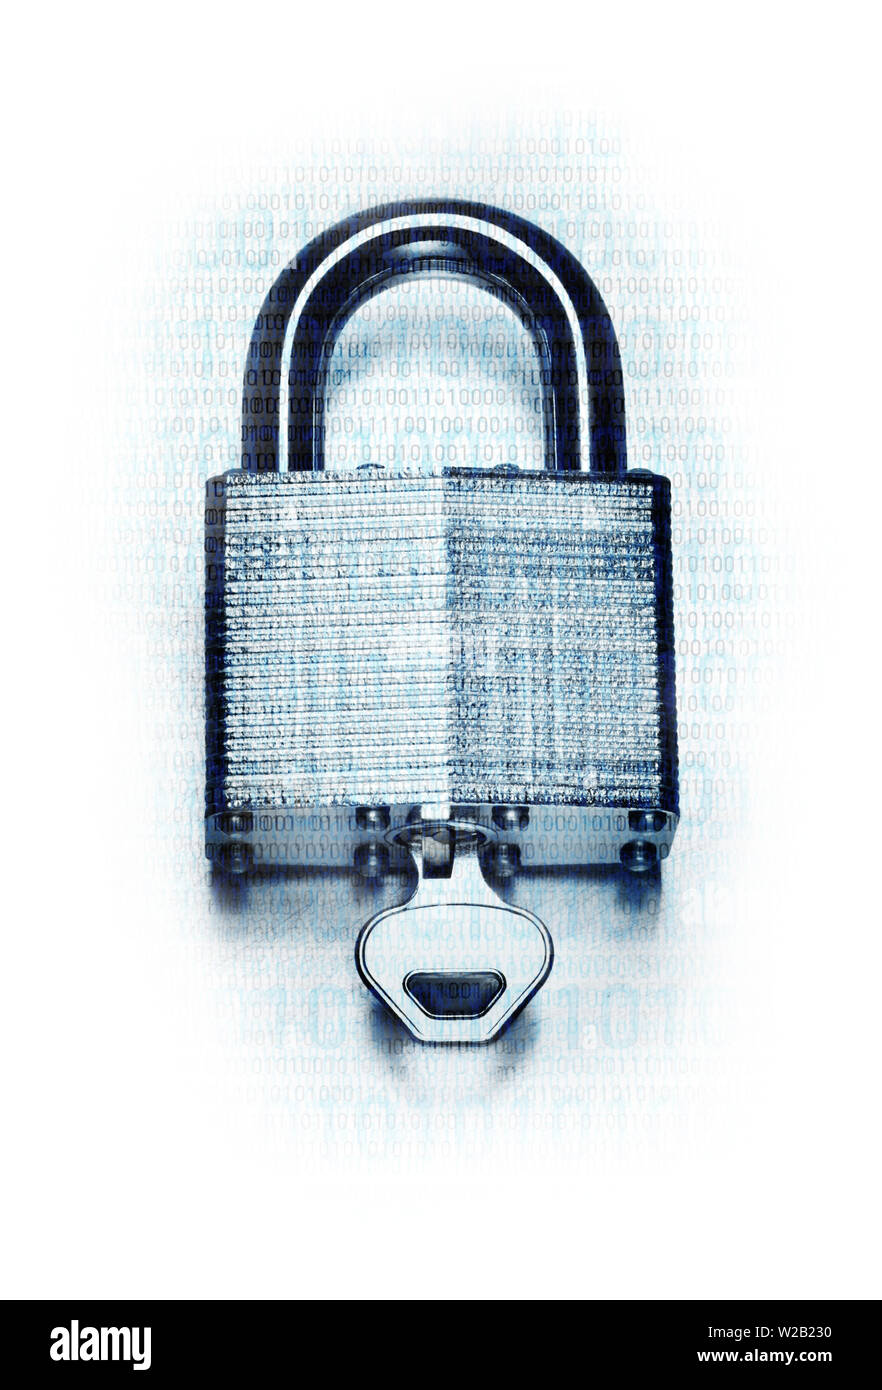 Concept digital security and encryption with binary code overlaid on steel padlock and key on fade to white background - Stock Image